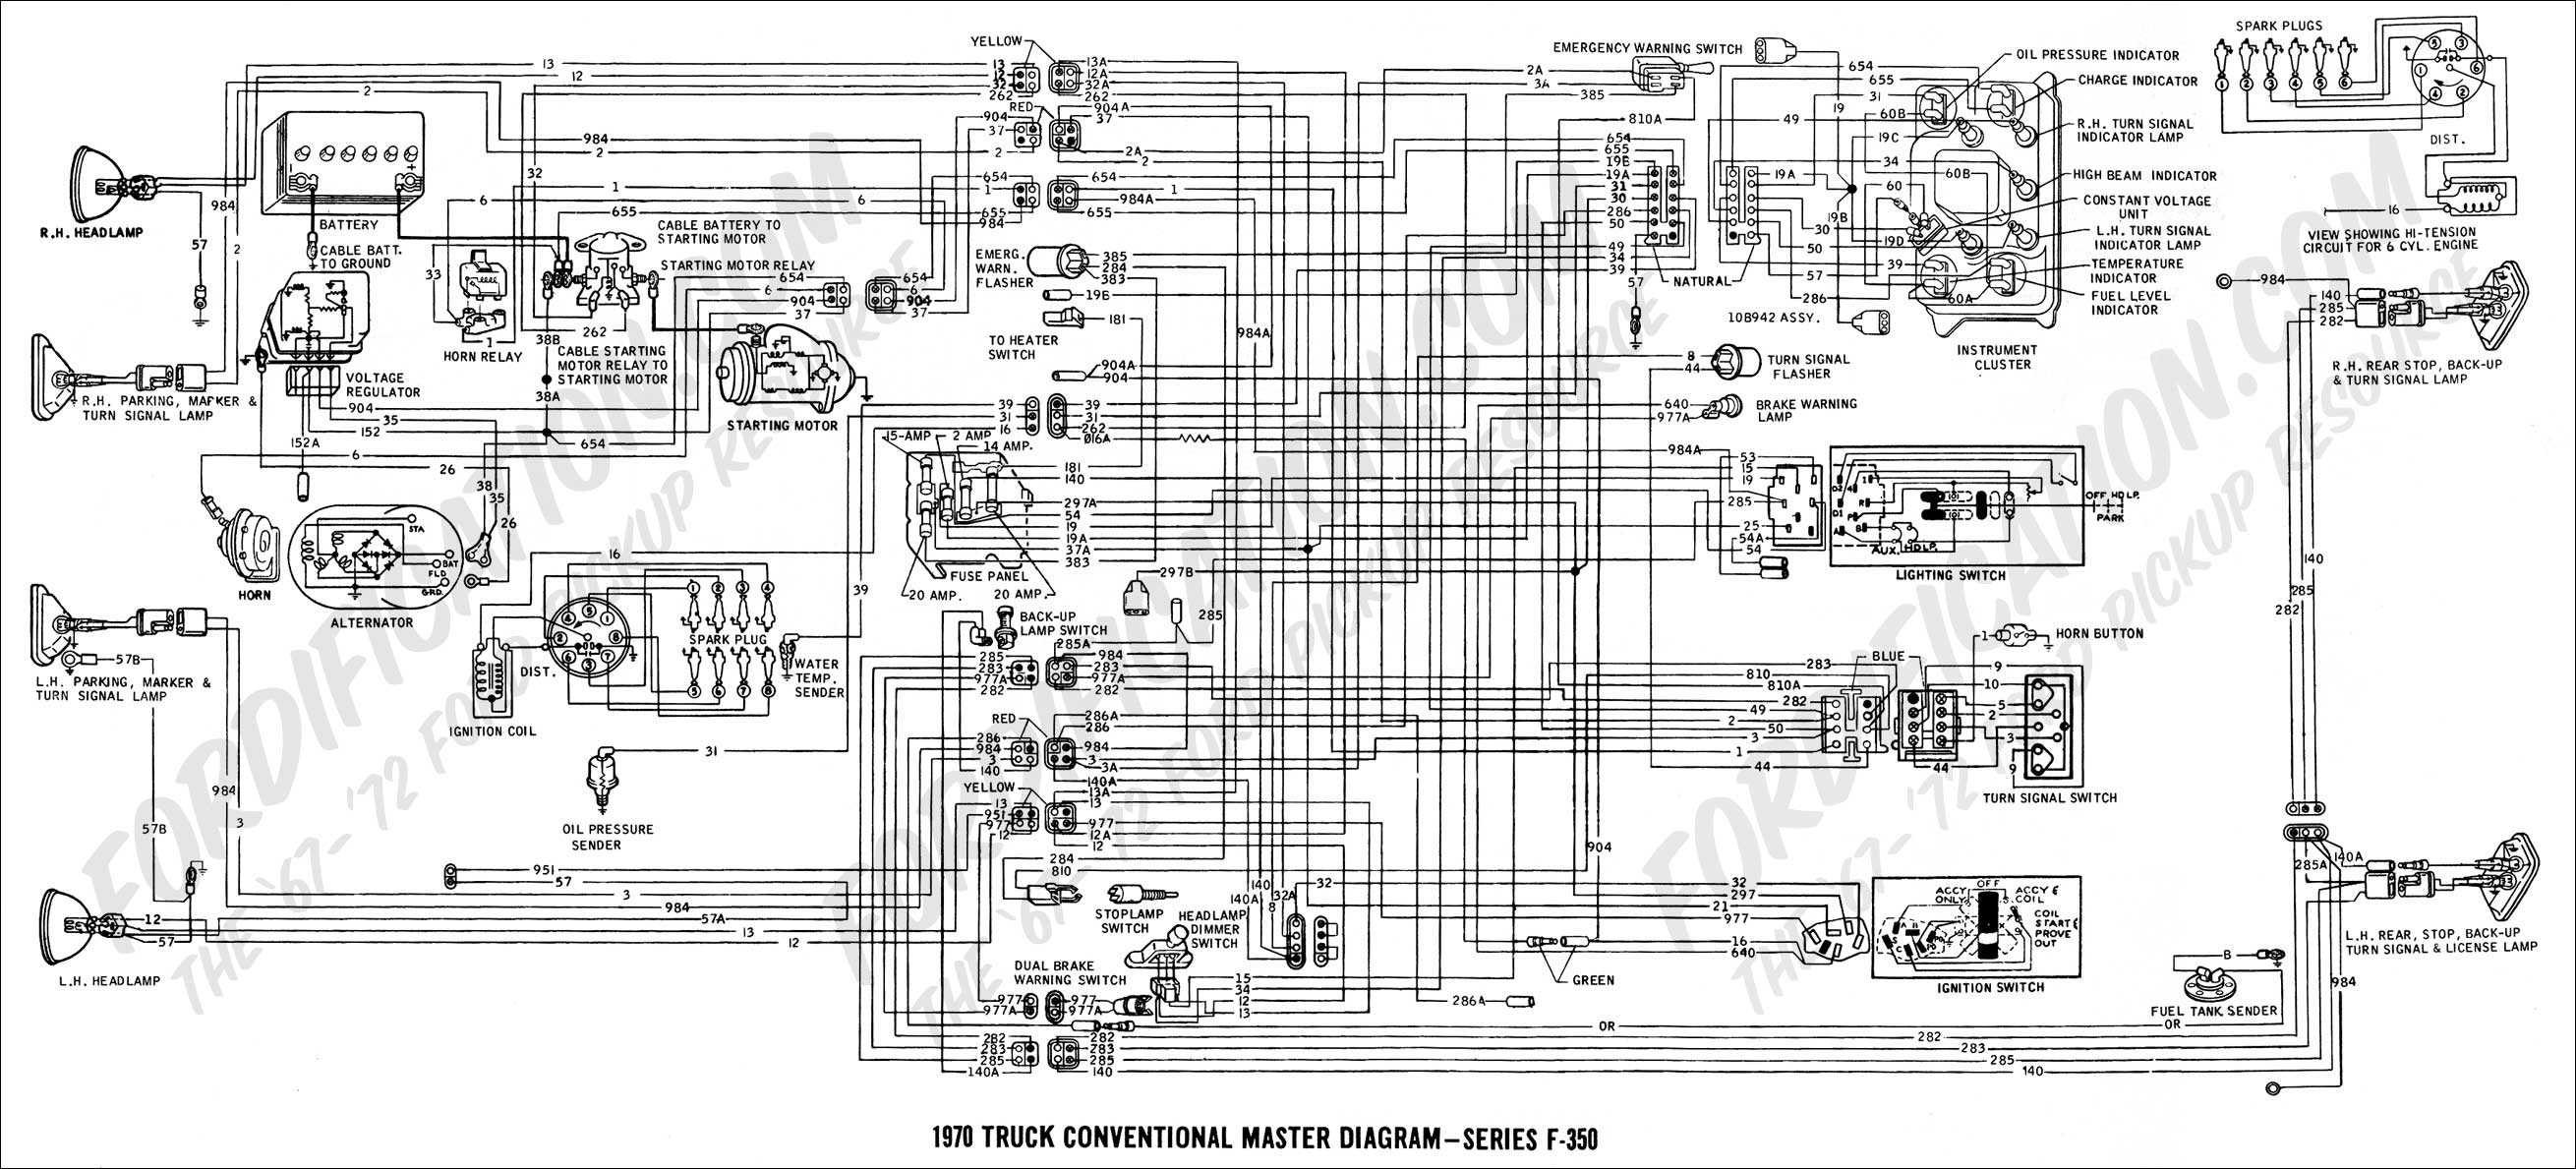 2006 Ford E250 Wiring Diagram - Wiring Source •